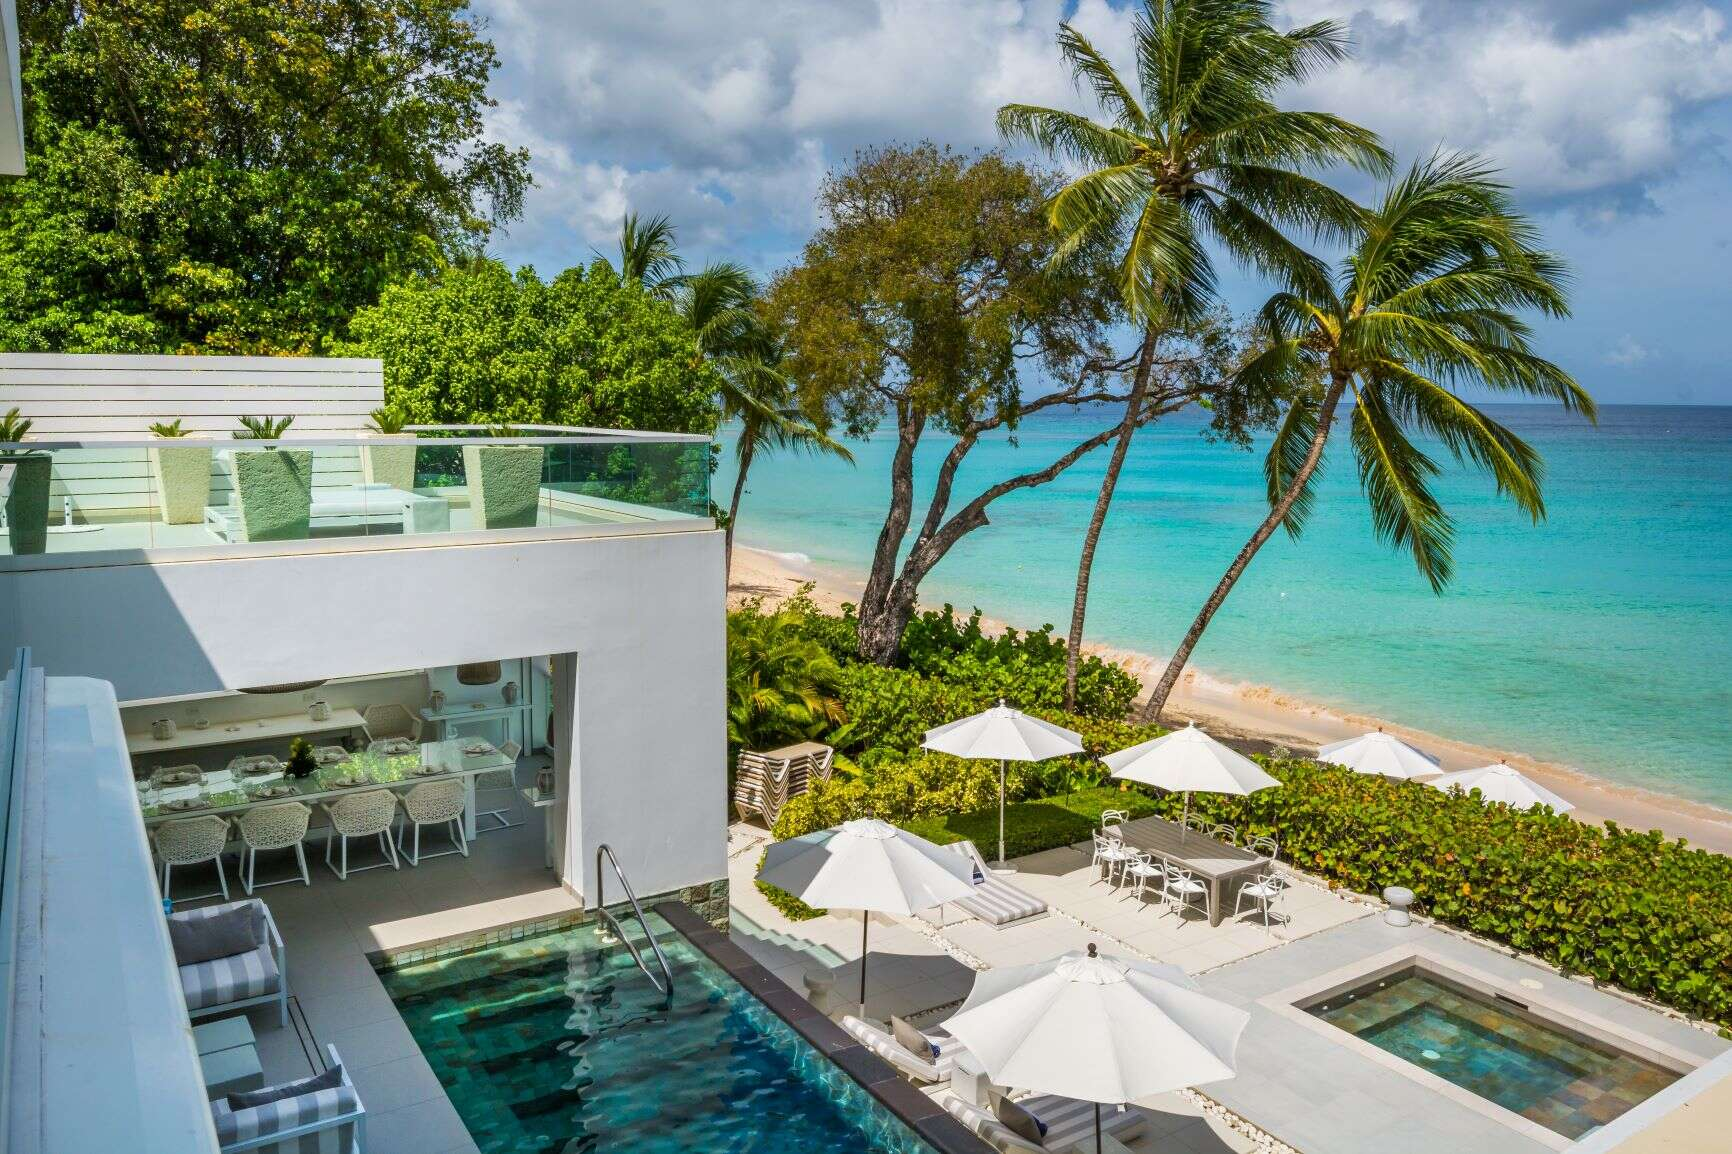 Luxury villa rentals caribbean - Barbados - St james - The garden - Footprints - Image 1/20